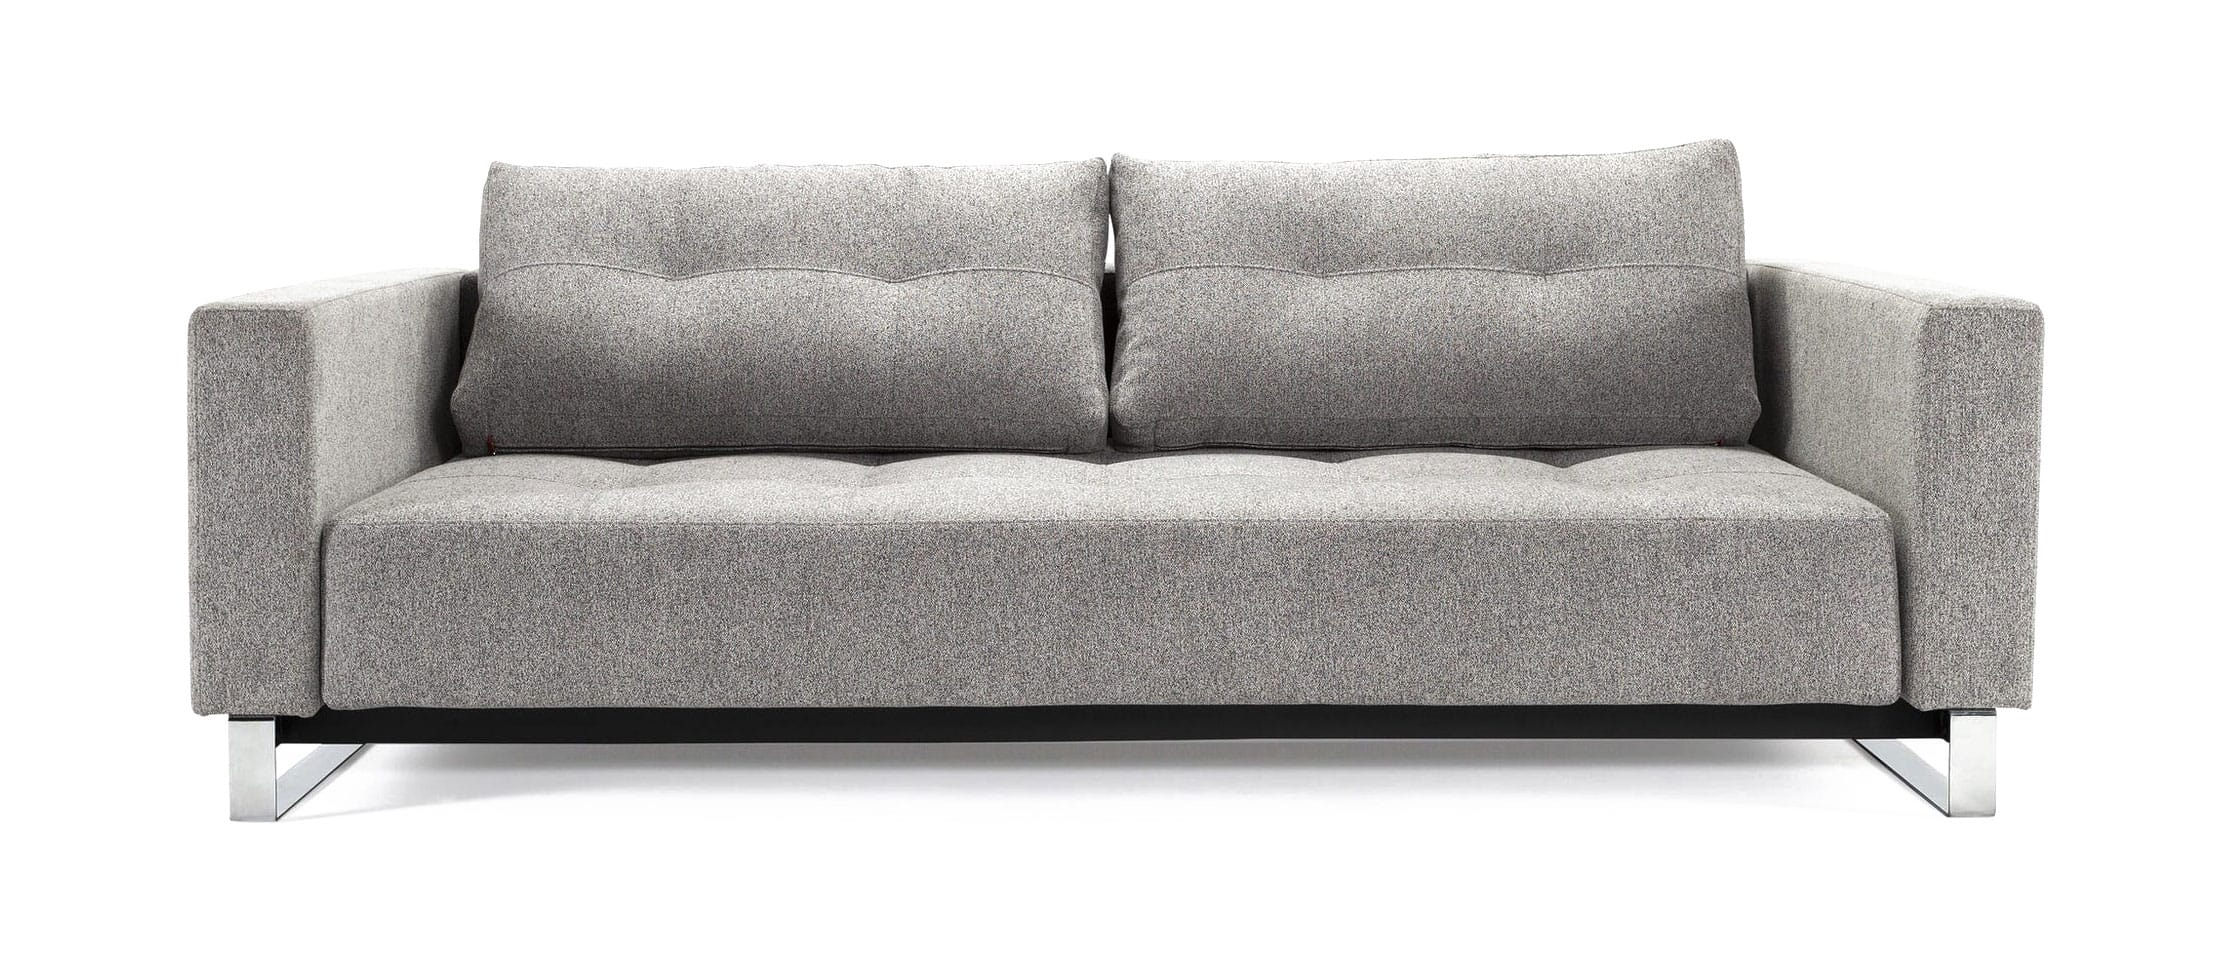 Picture of: Cassius Deluxe Excess Sofa Bed Queen Size Melange Light Gray By Innovation